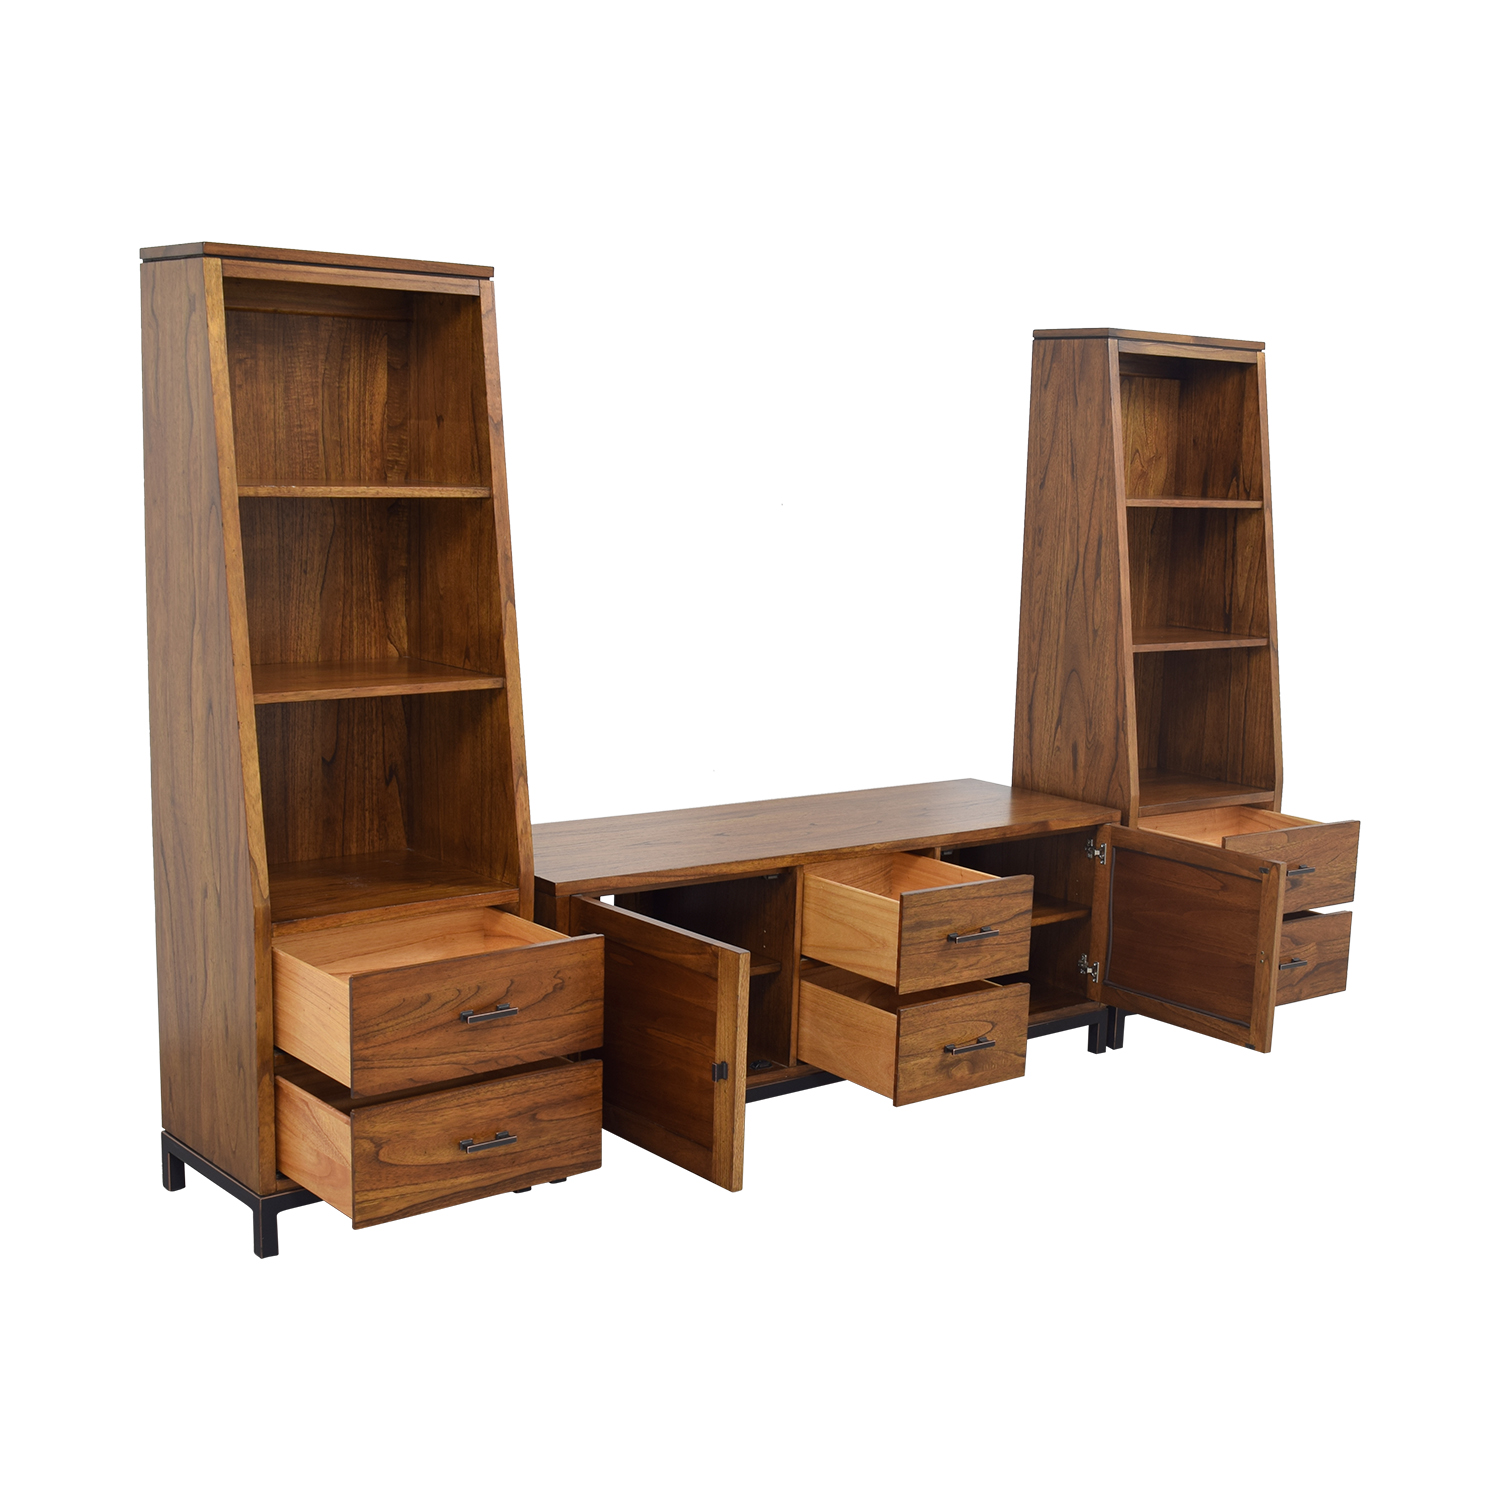 Ethan Allen Ethan Allen Hobson Media Center with Flanking Hobson Pier Bookcases Media Units